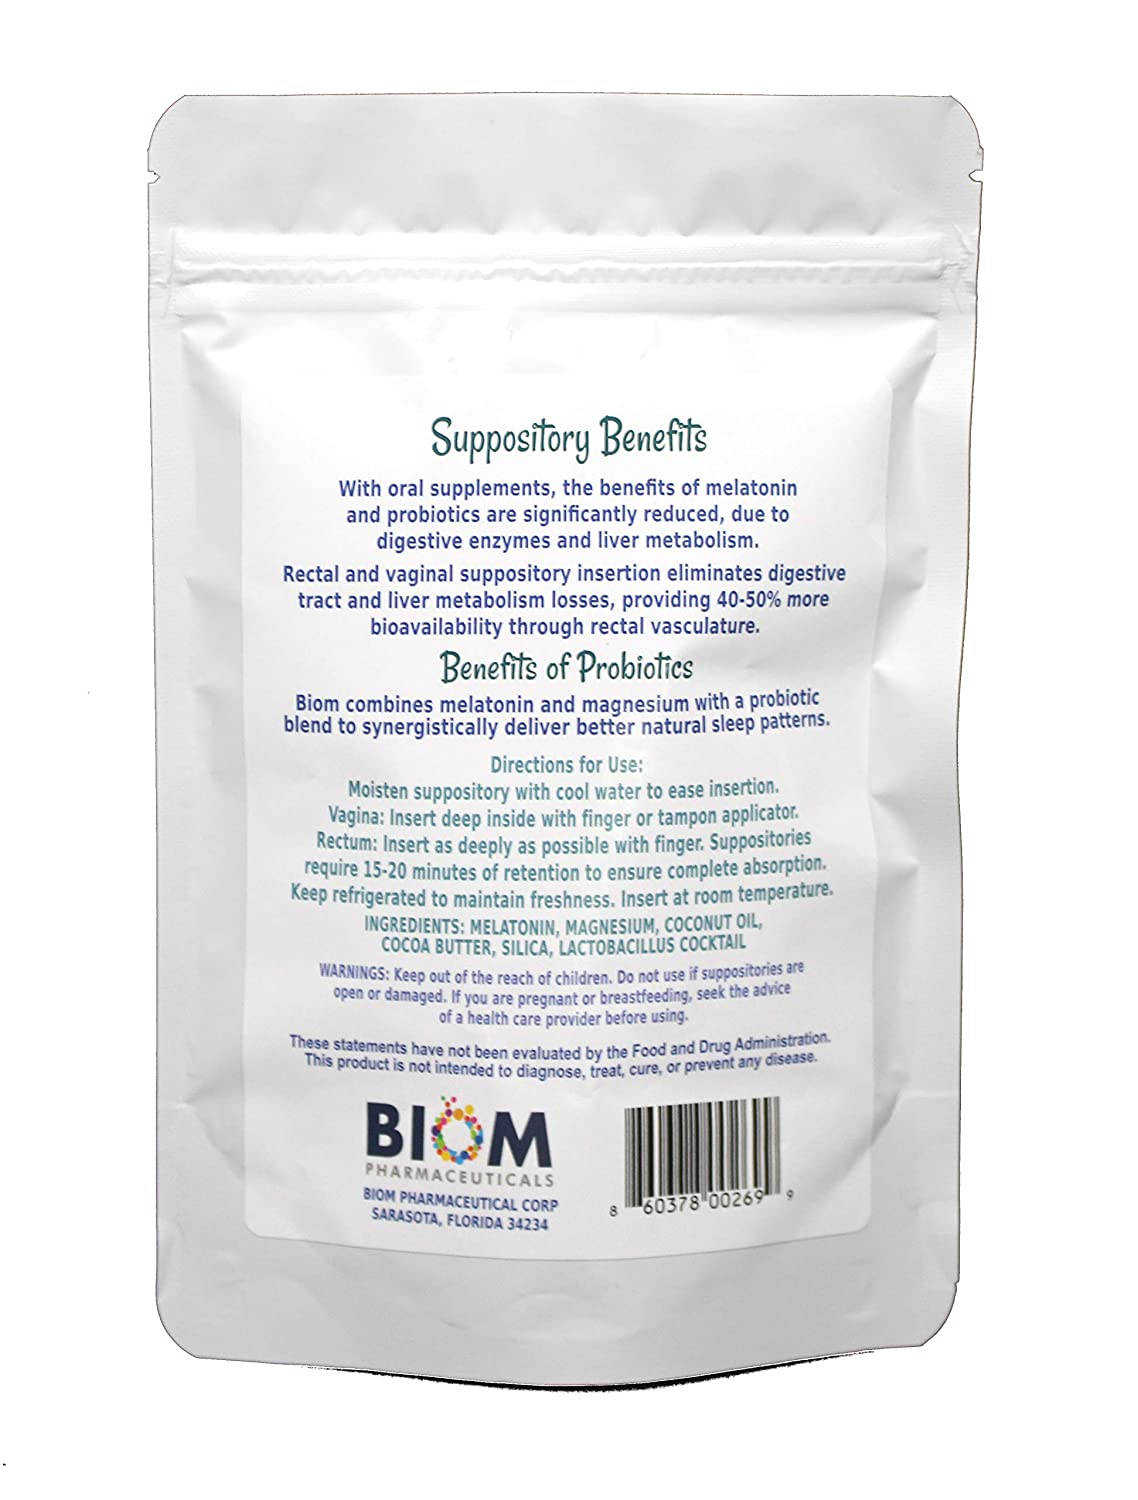 Amazon.com: Biom Sleep Suppository: Melatonina + Magnesio + ...